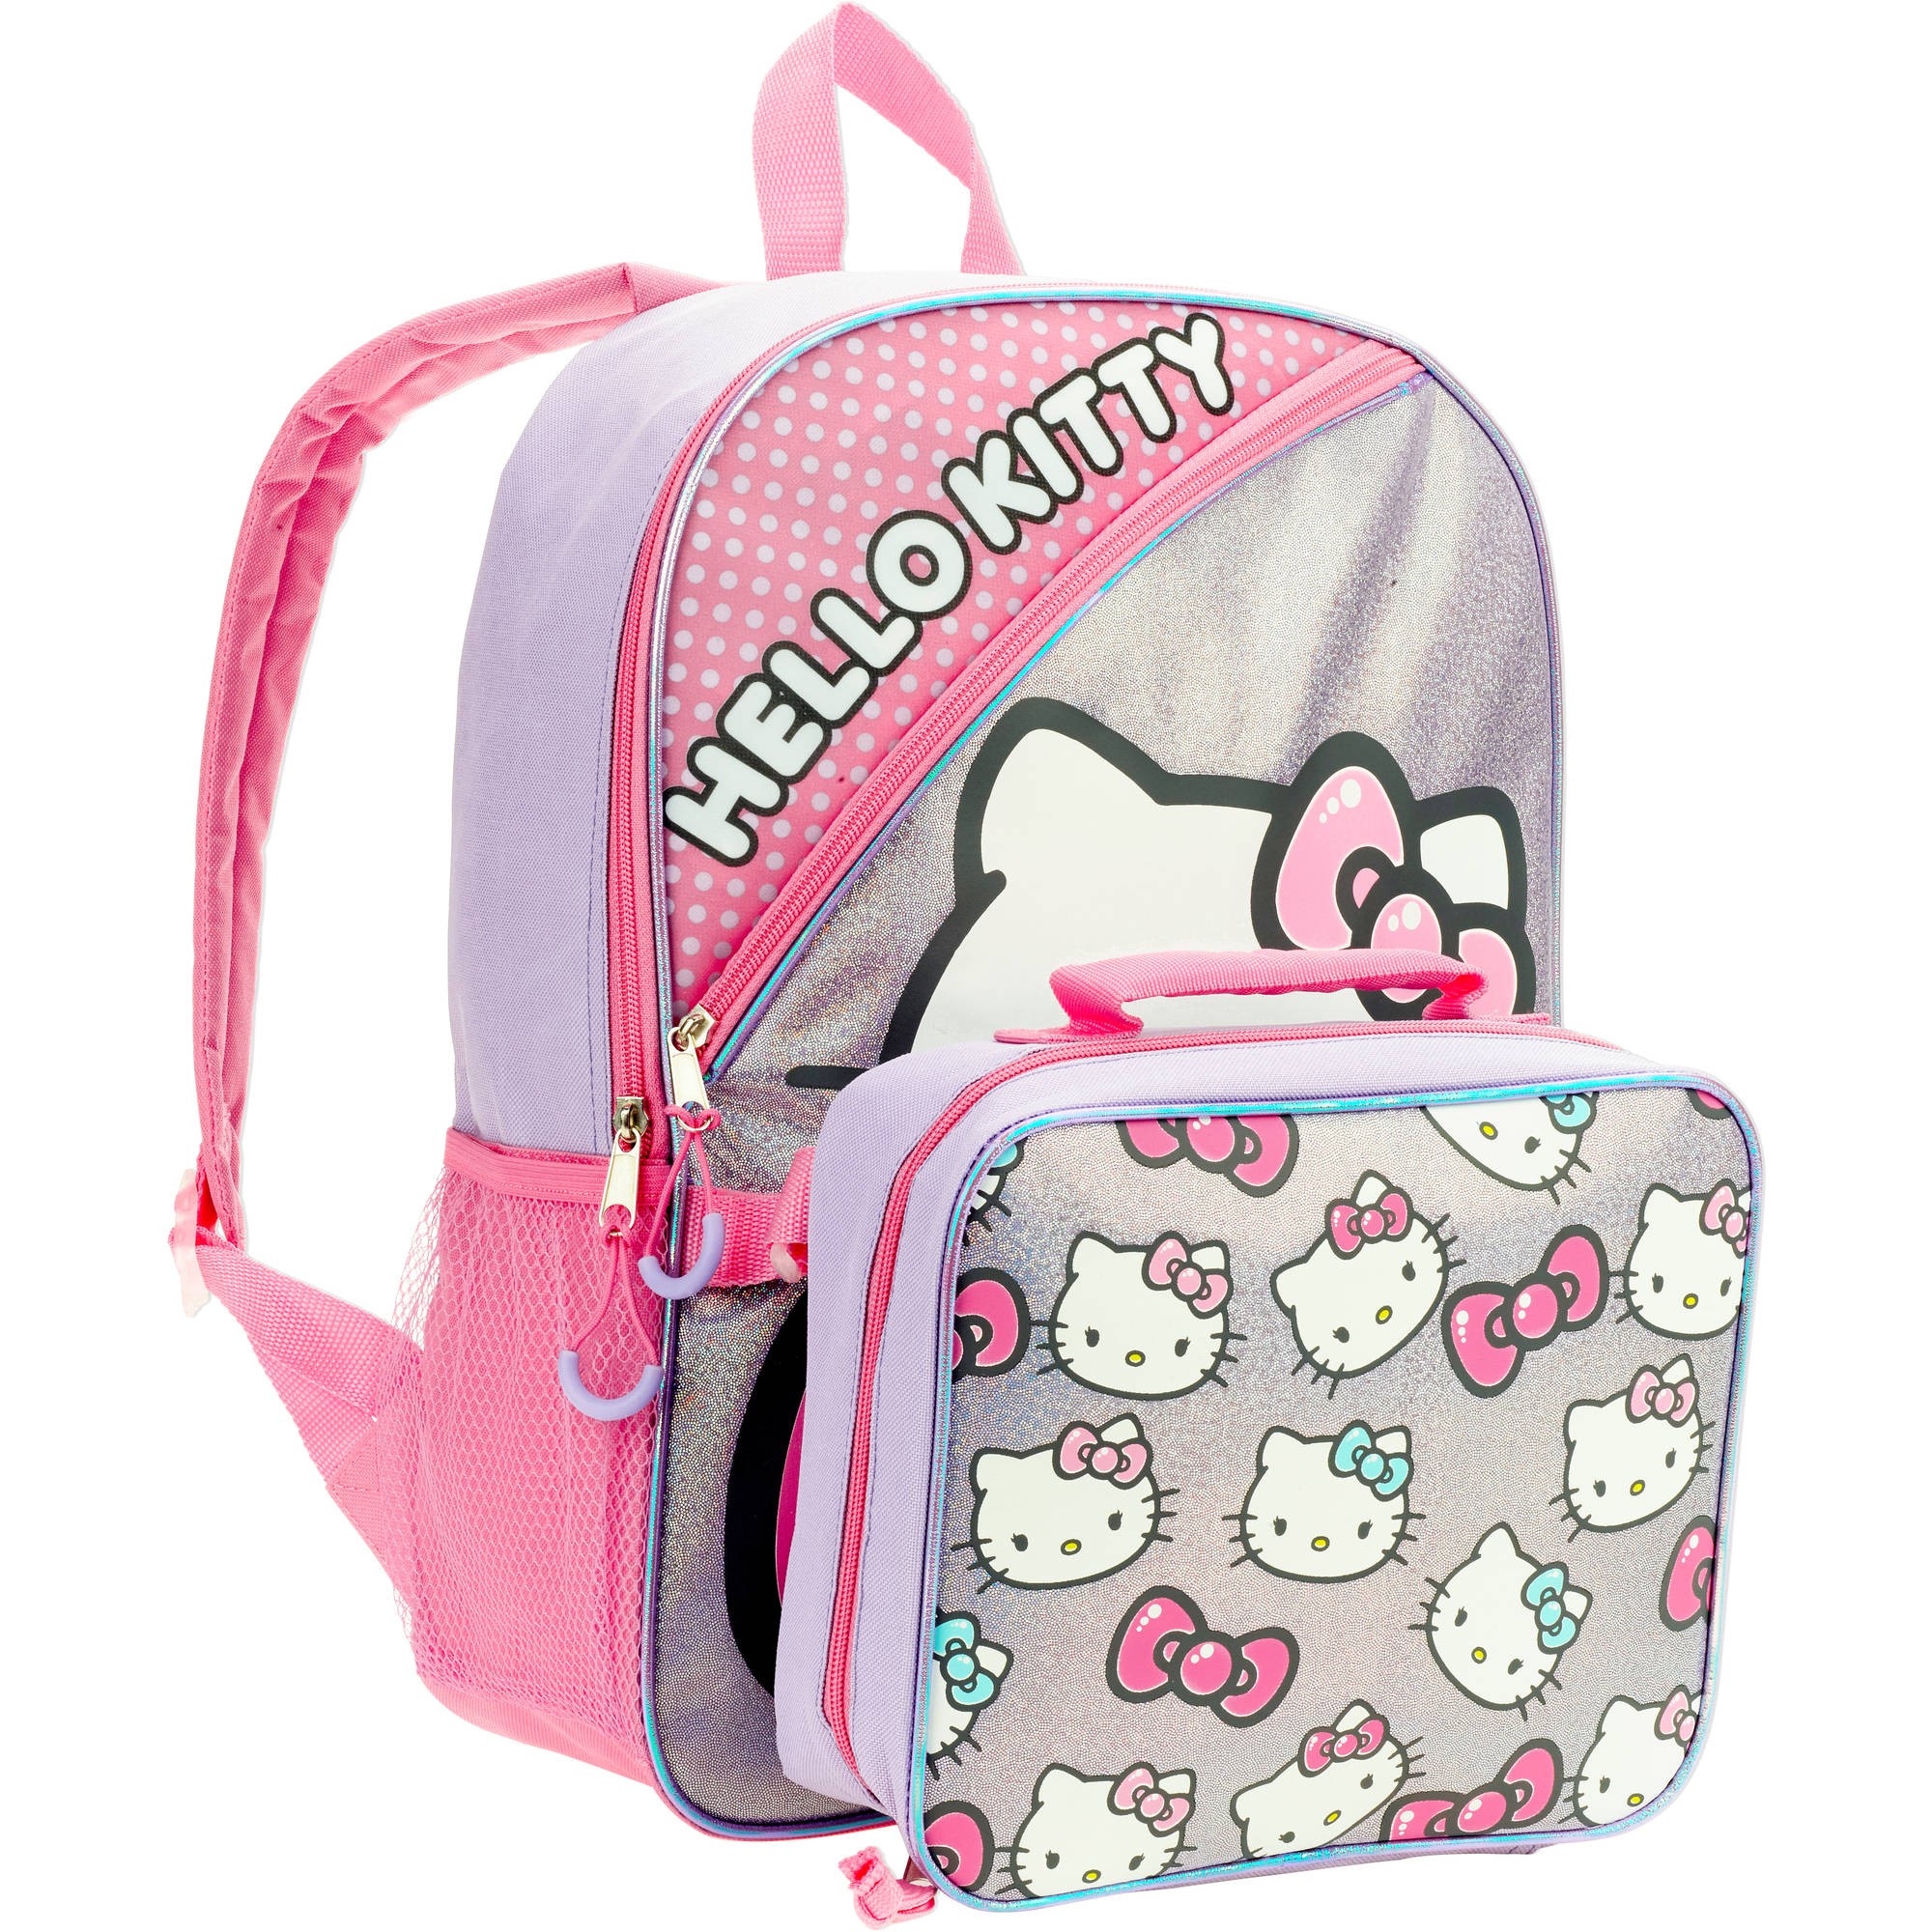 Large Backpacks For Girls vxwq8zgR